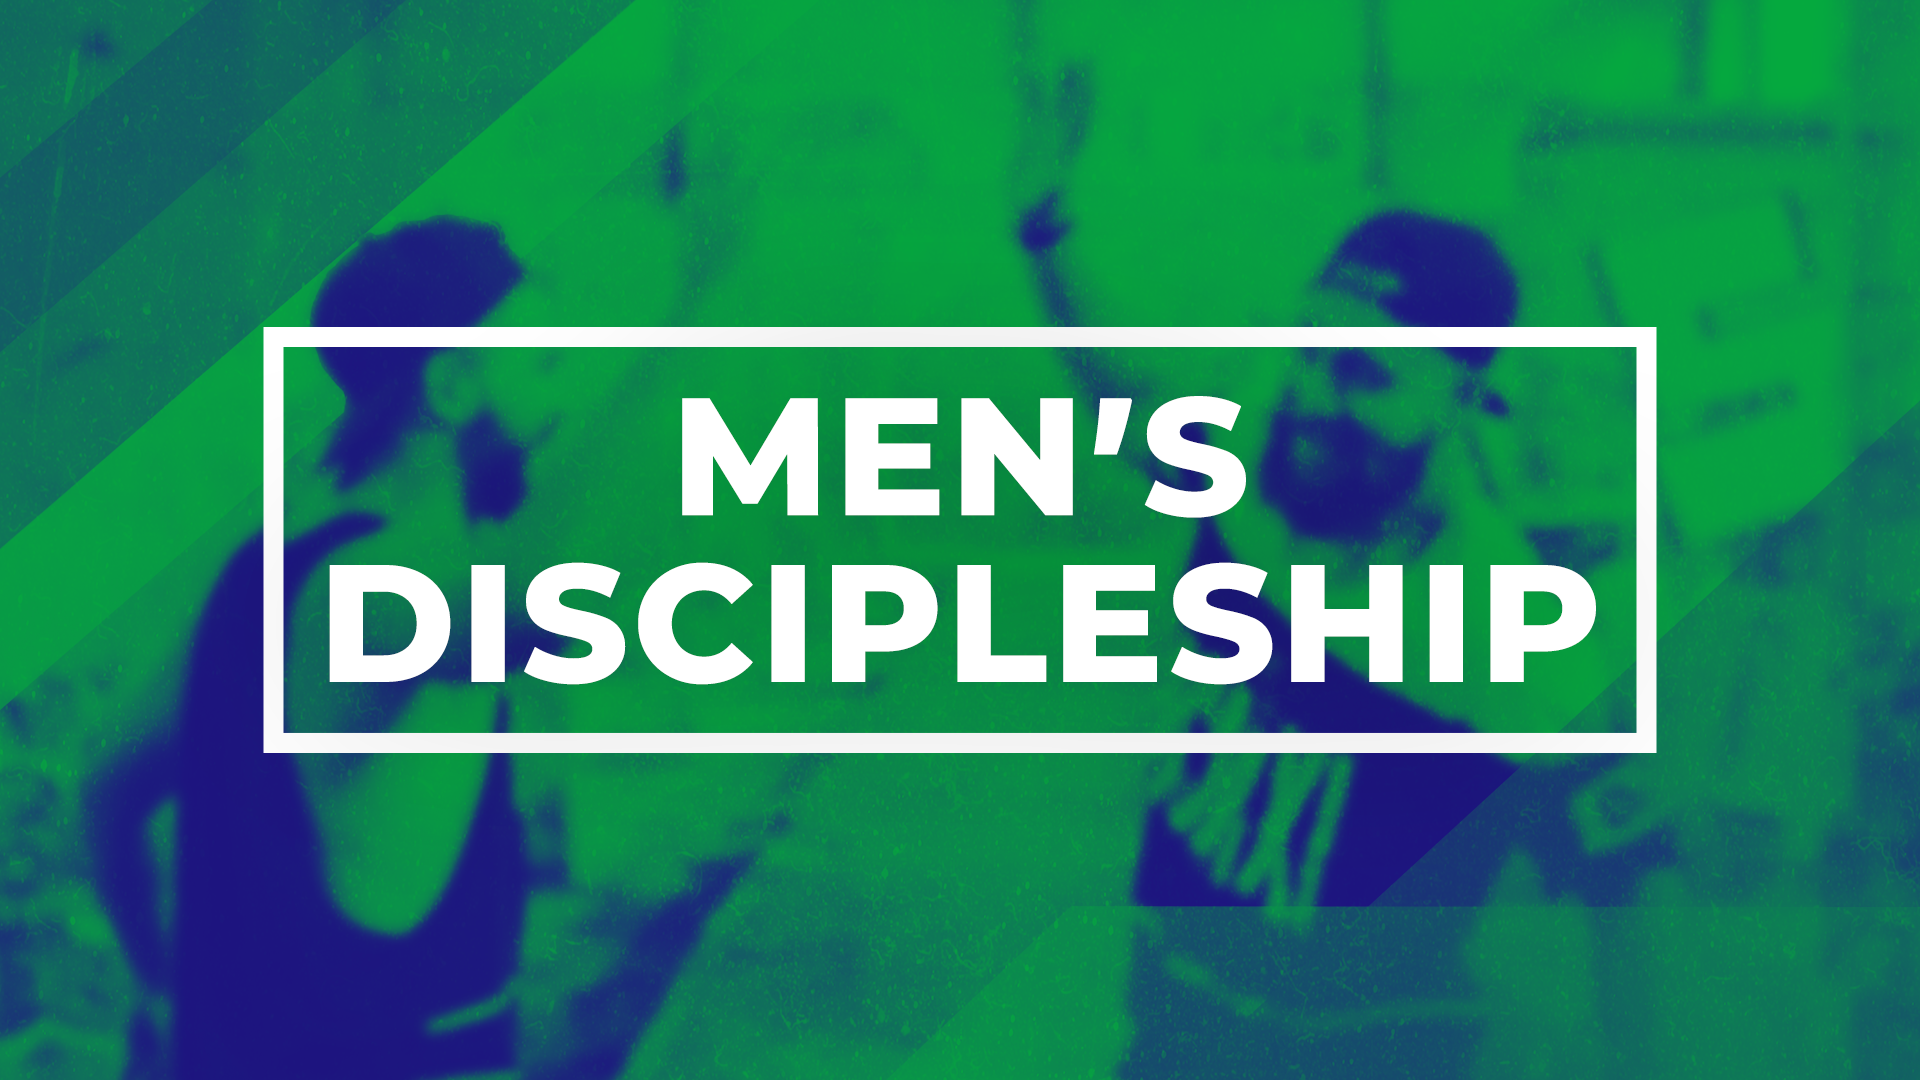 Men's Discipleship